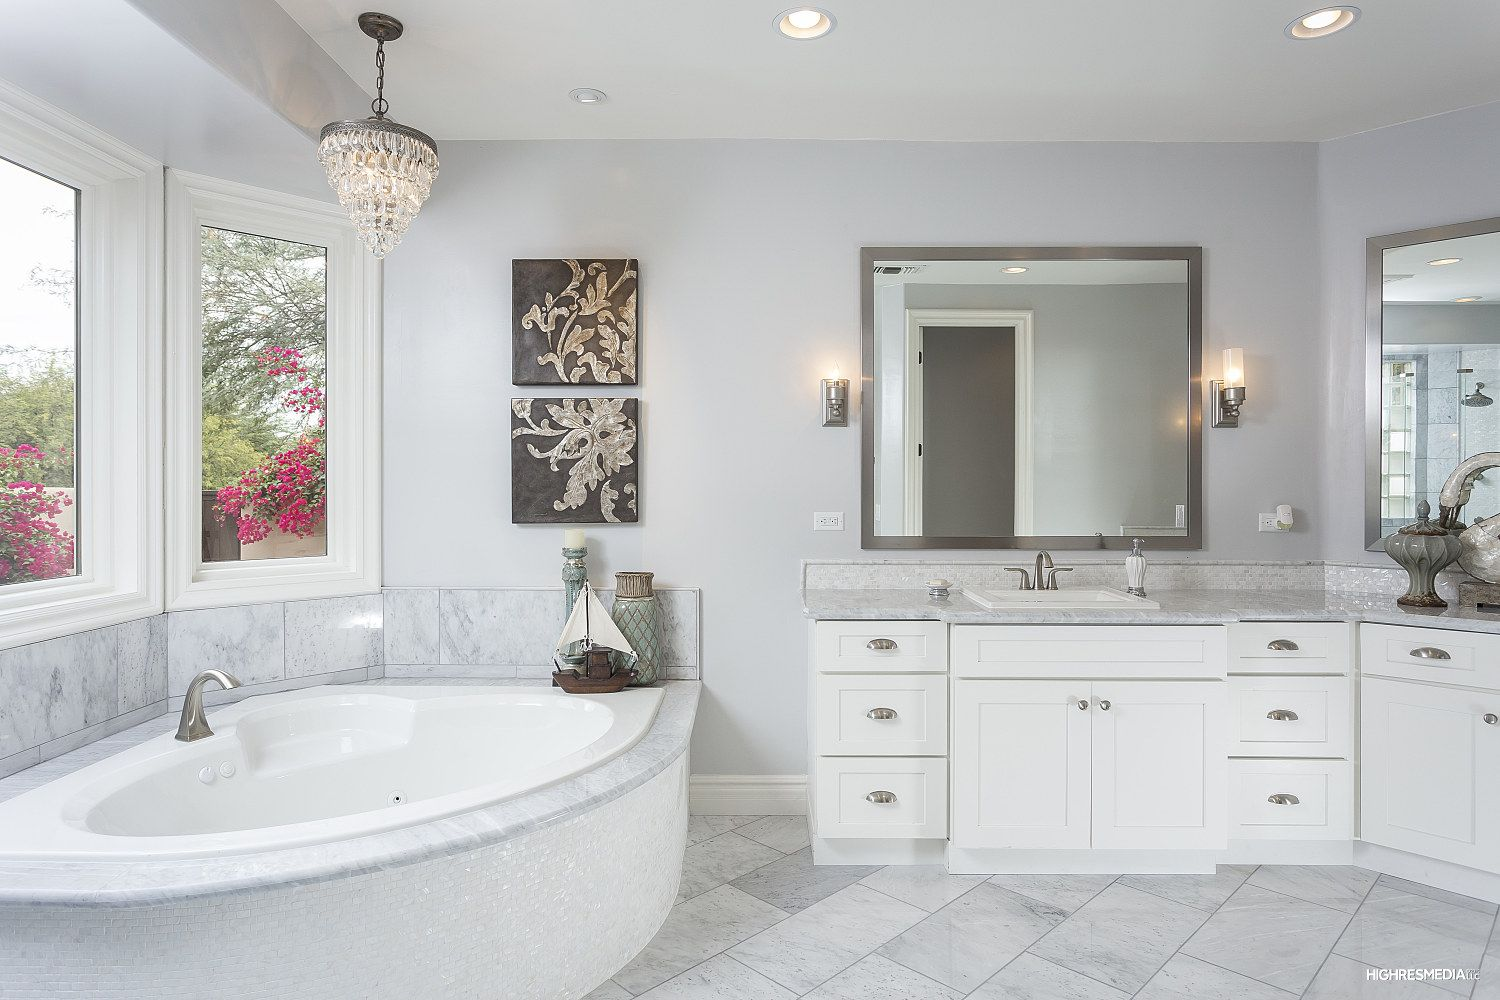 AMAZING master bath! Marble counters, marble floors, double sinks and huge tub with jets!